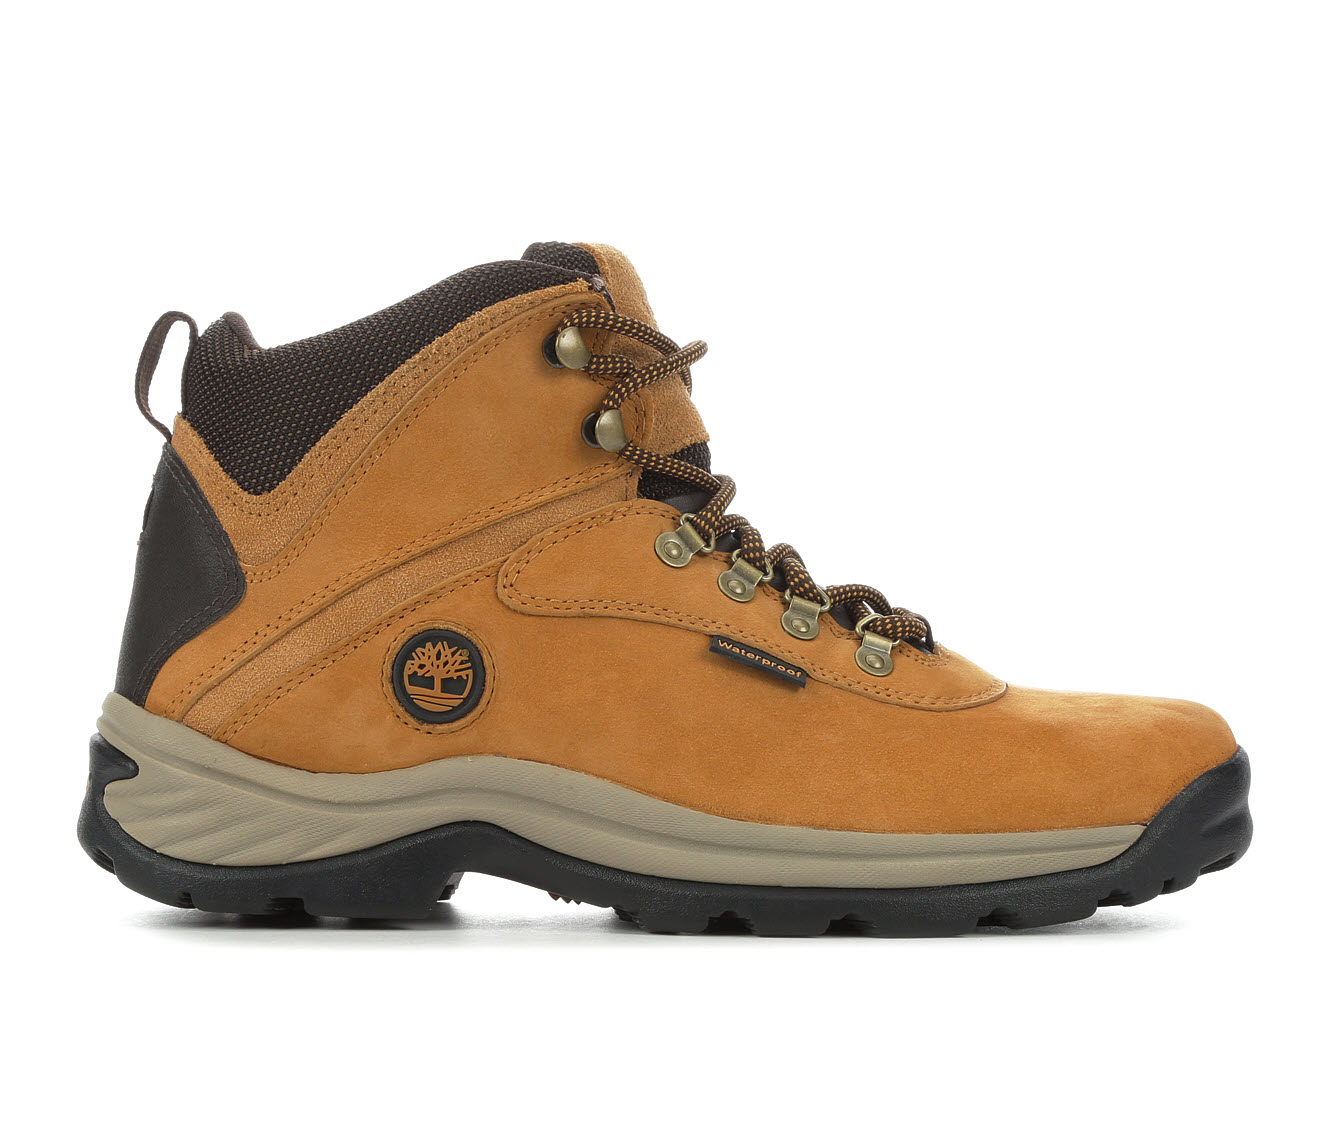 Timberland White Ledge Waterproof Men's Boots (Beige Leather)